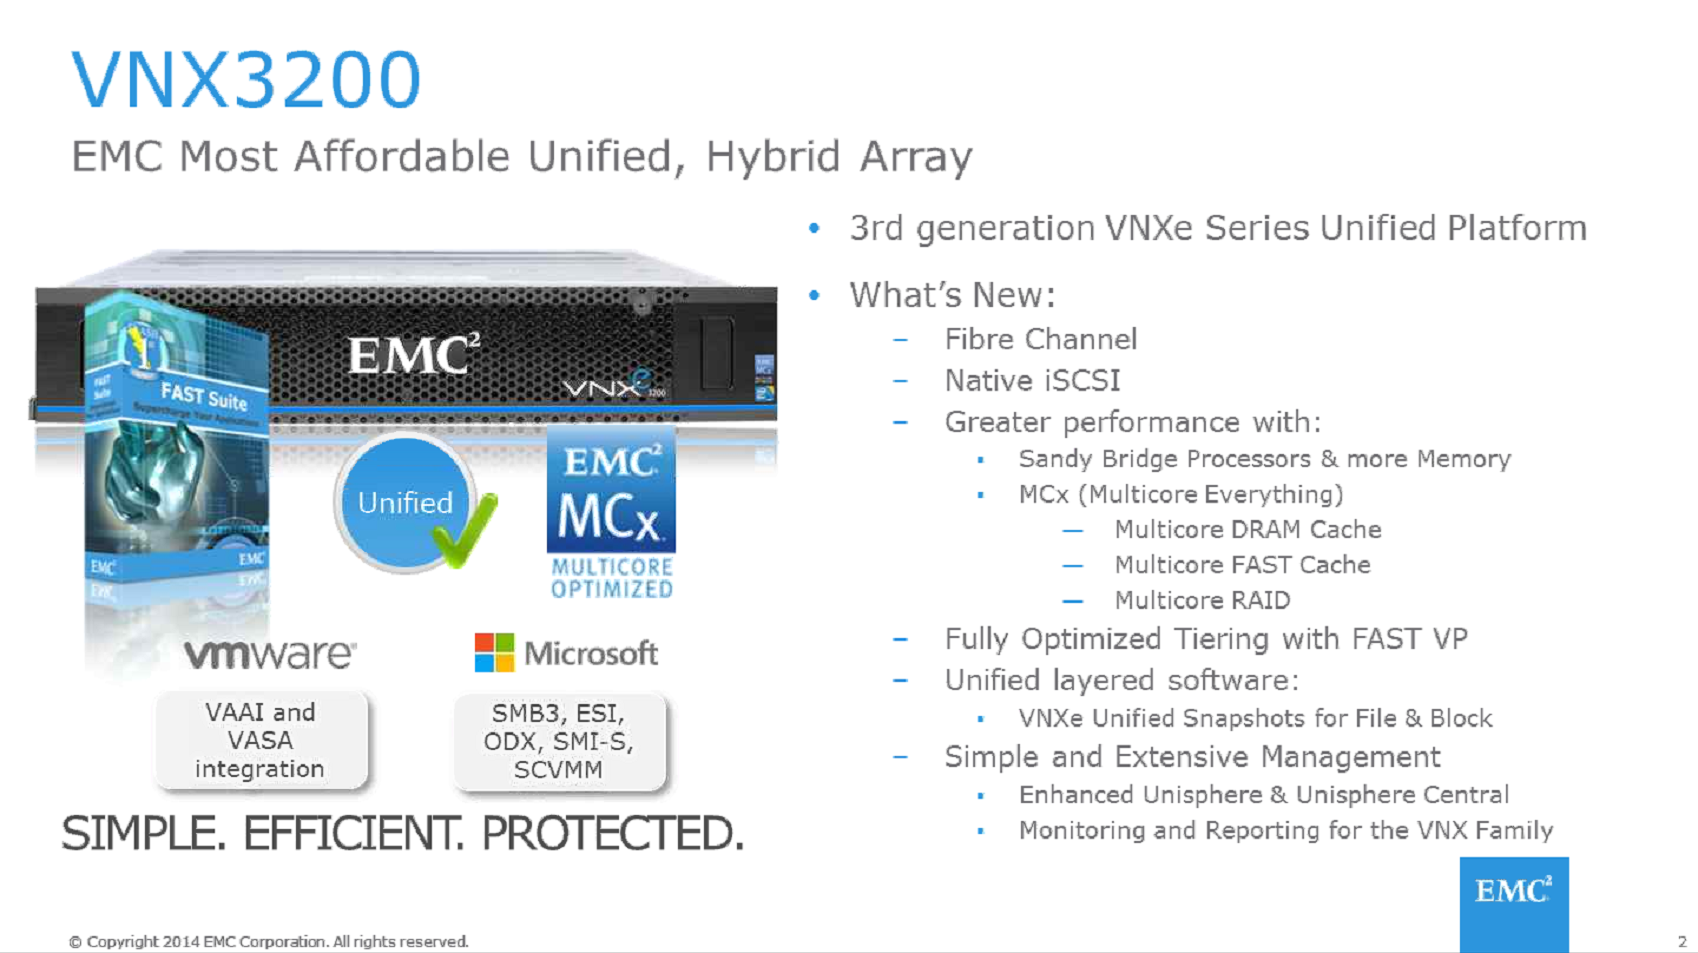 Whats new with the VNXe3200